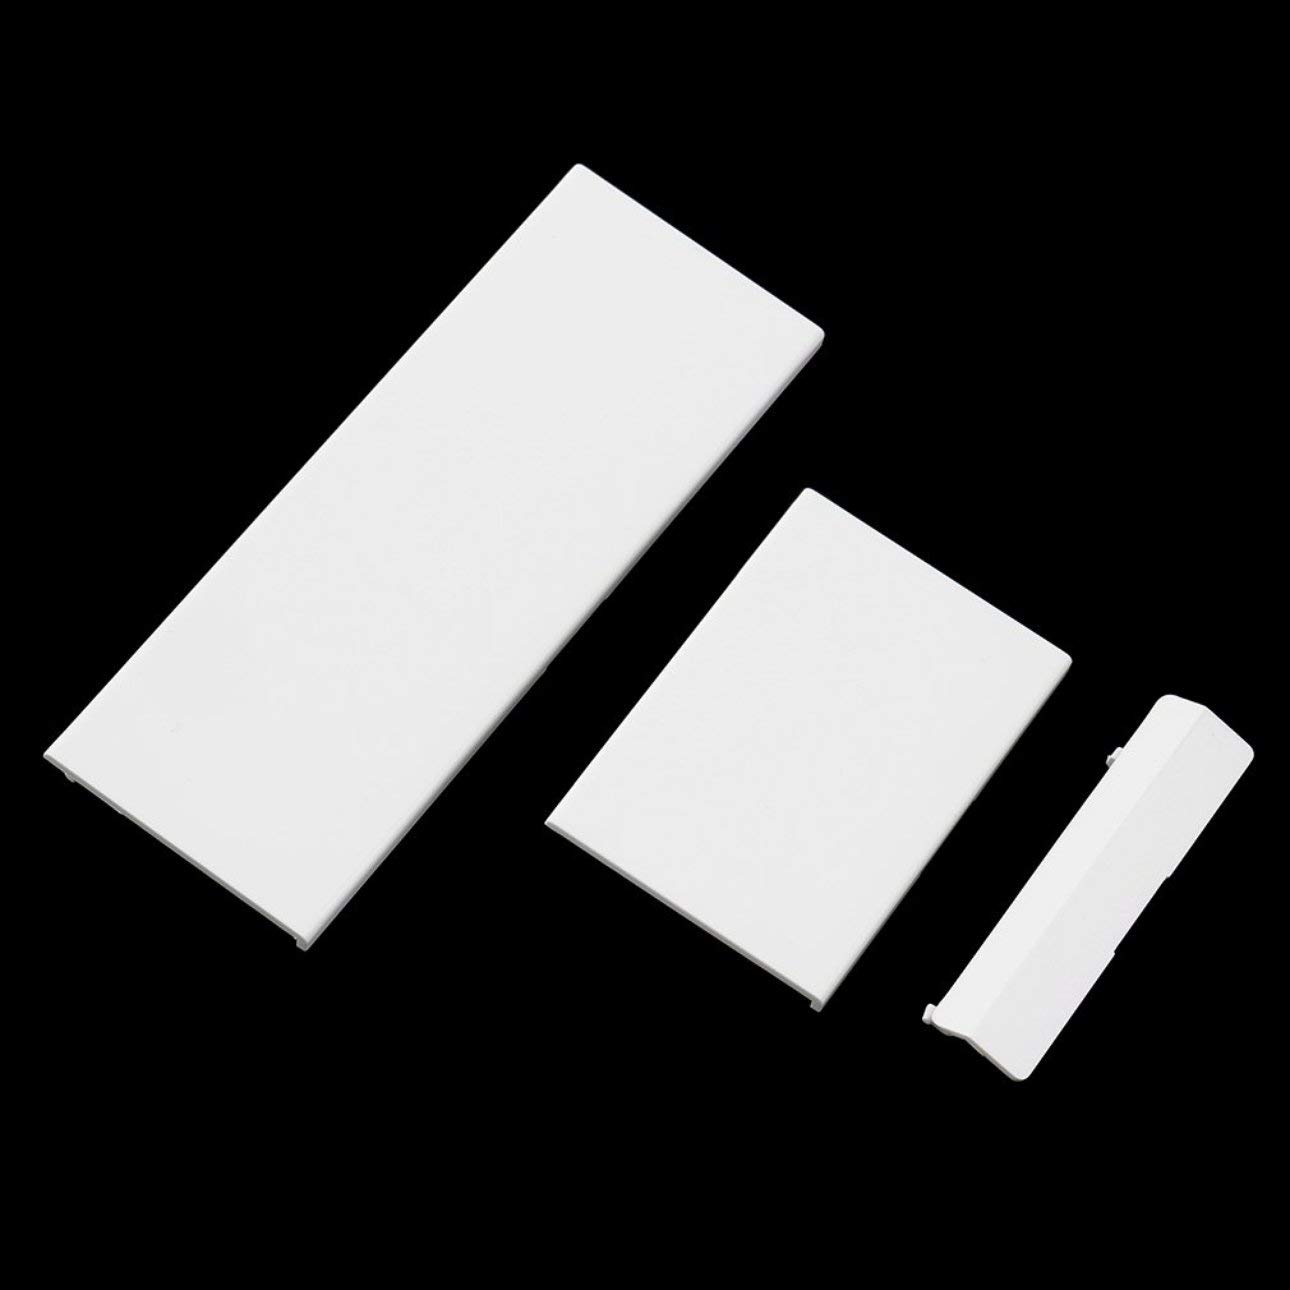 Liobaba Replacement Memeory Card Door Slot Cover Lid 3 Parts Door Covers for Nintendo Wii Console System White